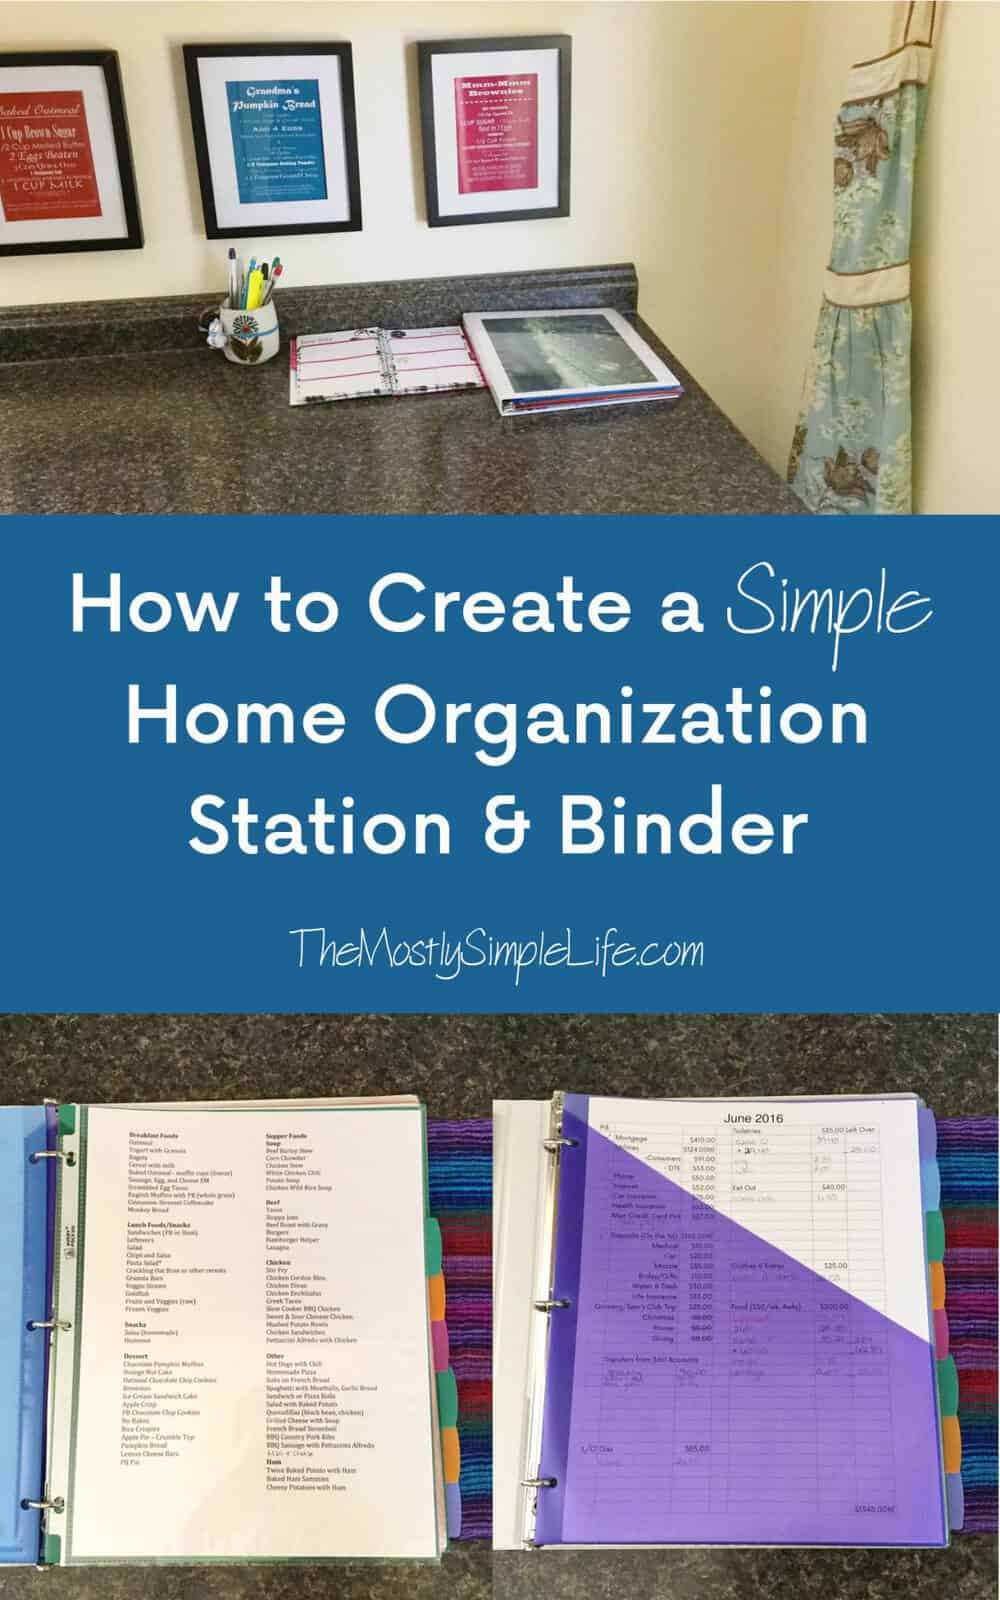 DIY Homemaking Binder | Great ideas for household organization. They keep their budget, meal planning, contact info, and other important paperwork in here. I need a home organization station so bad!